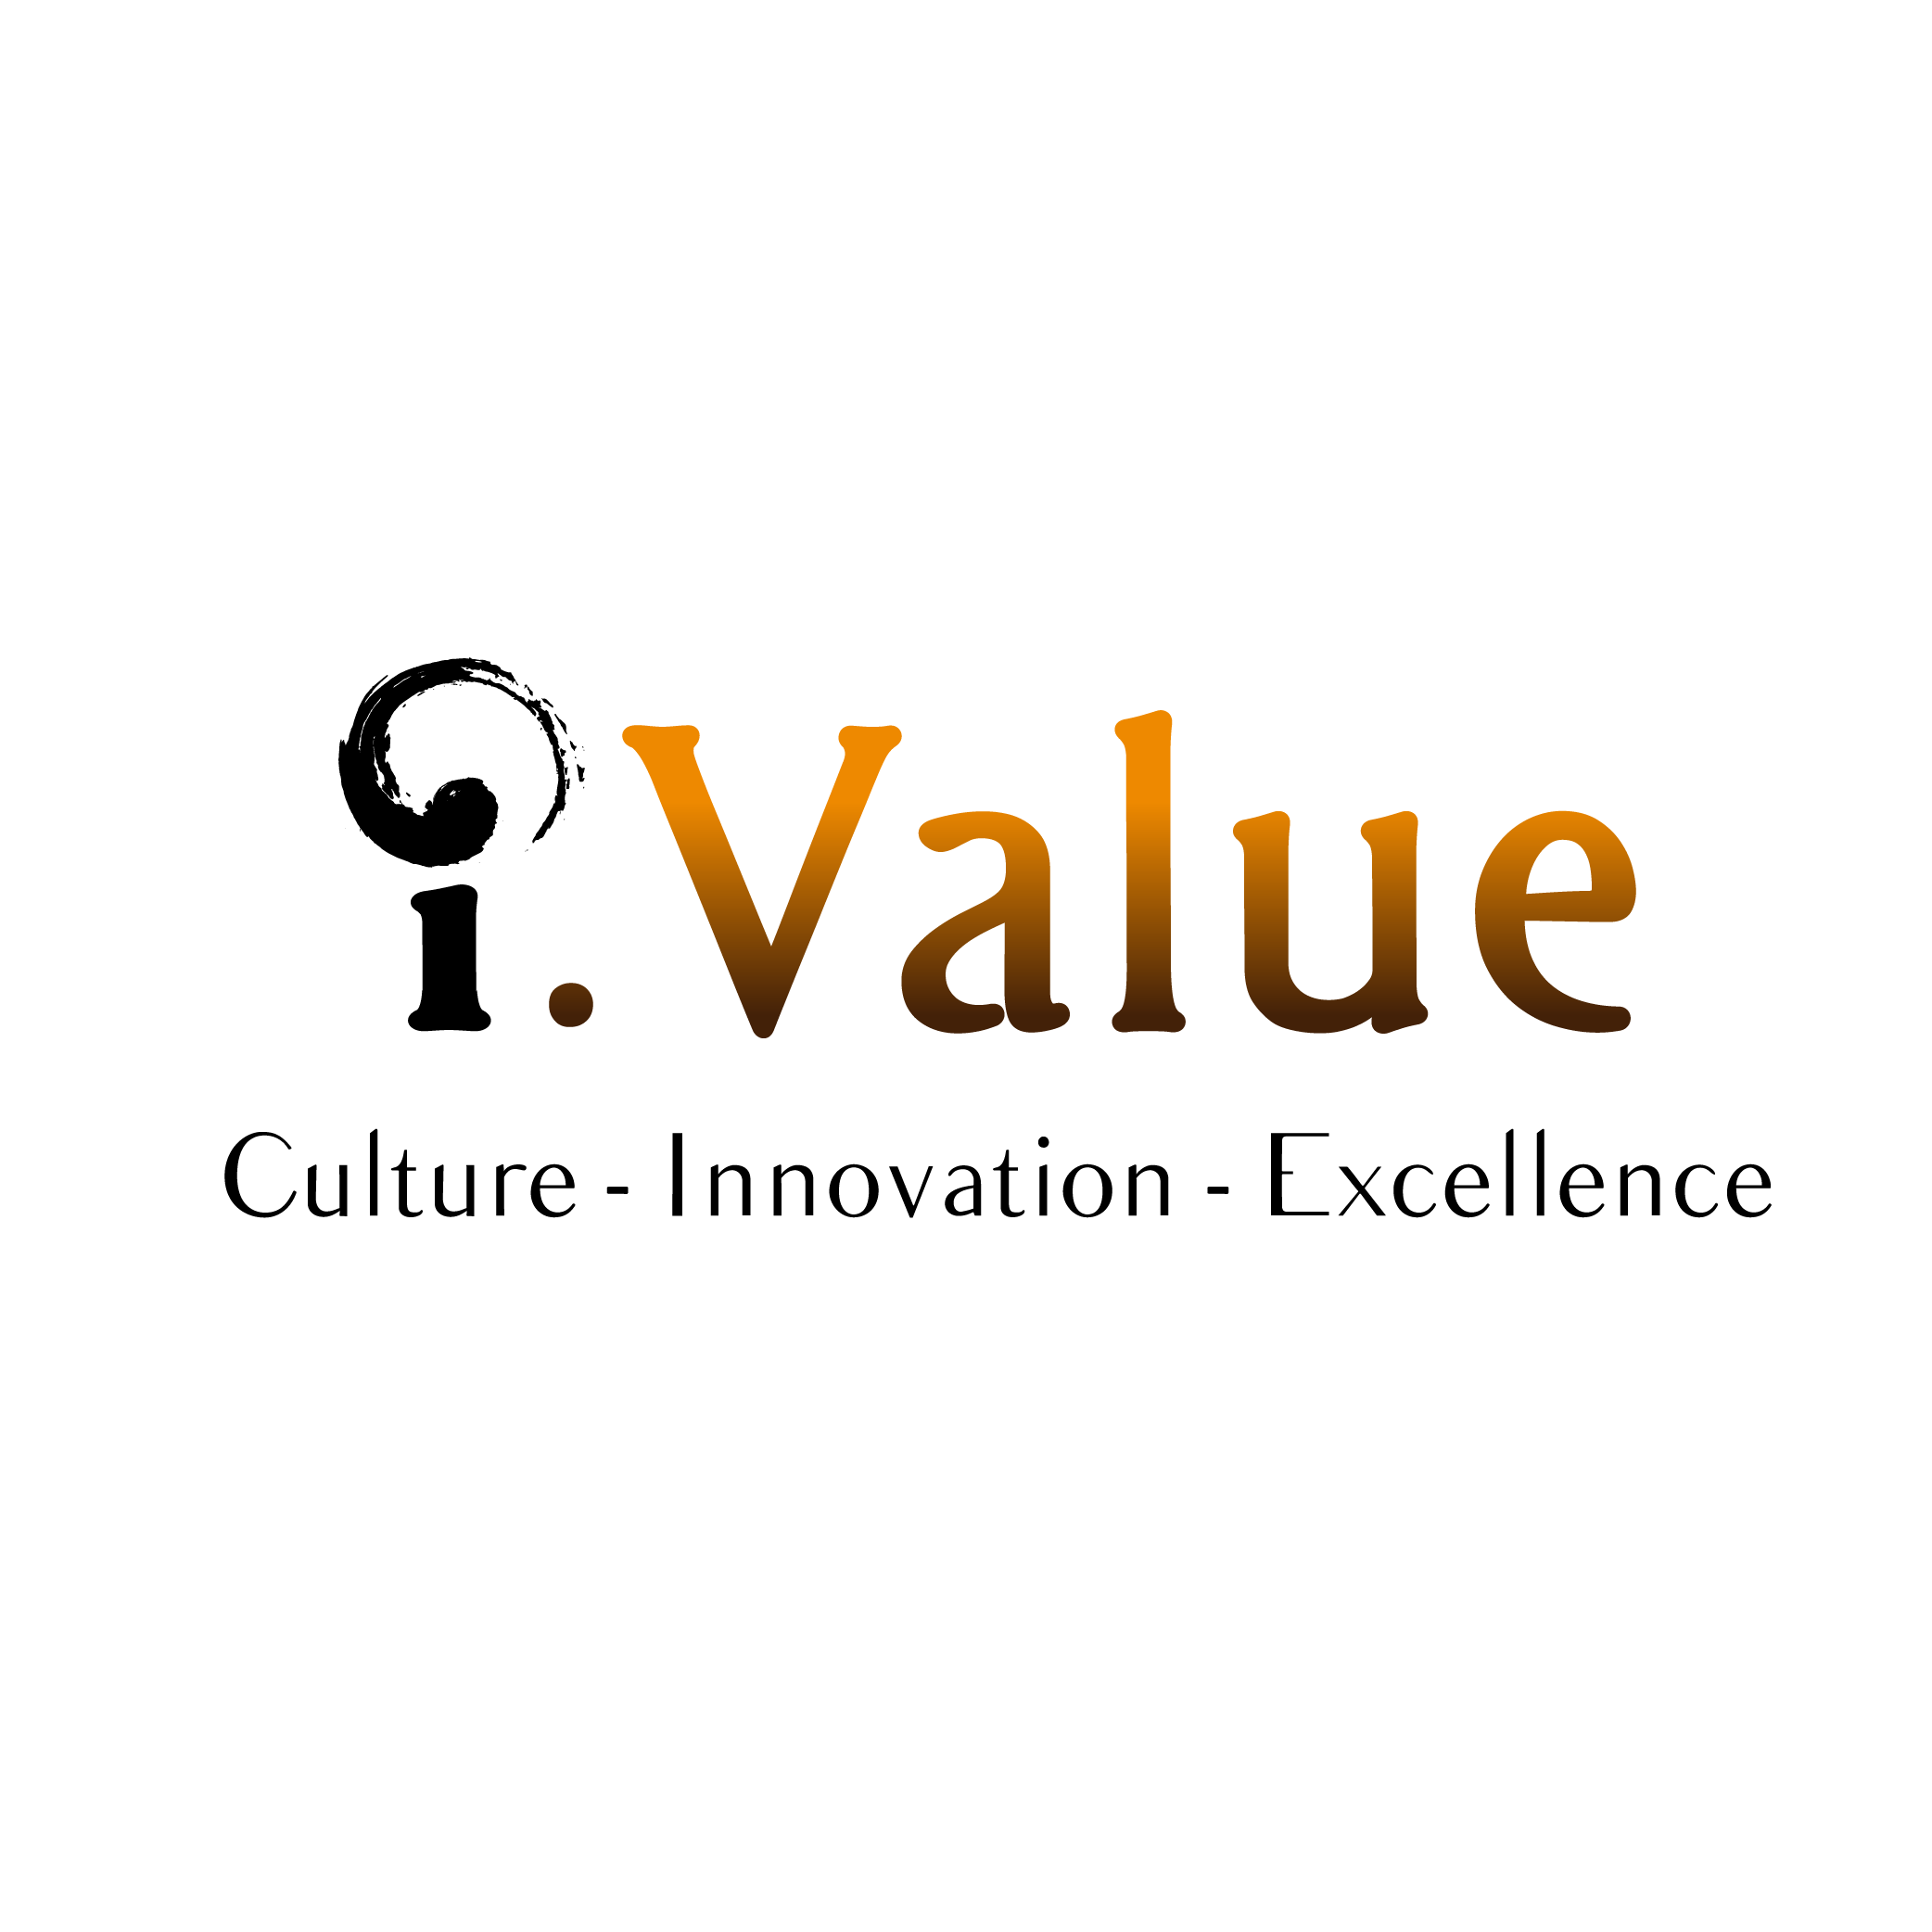 I.VALUE CORP (CÔNG TY CỔ PHẦN I.VALUE)